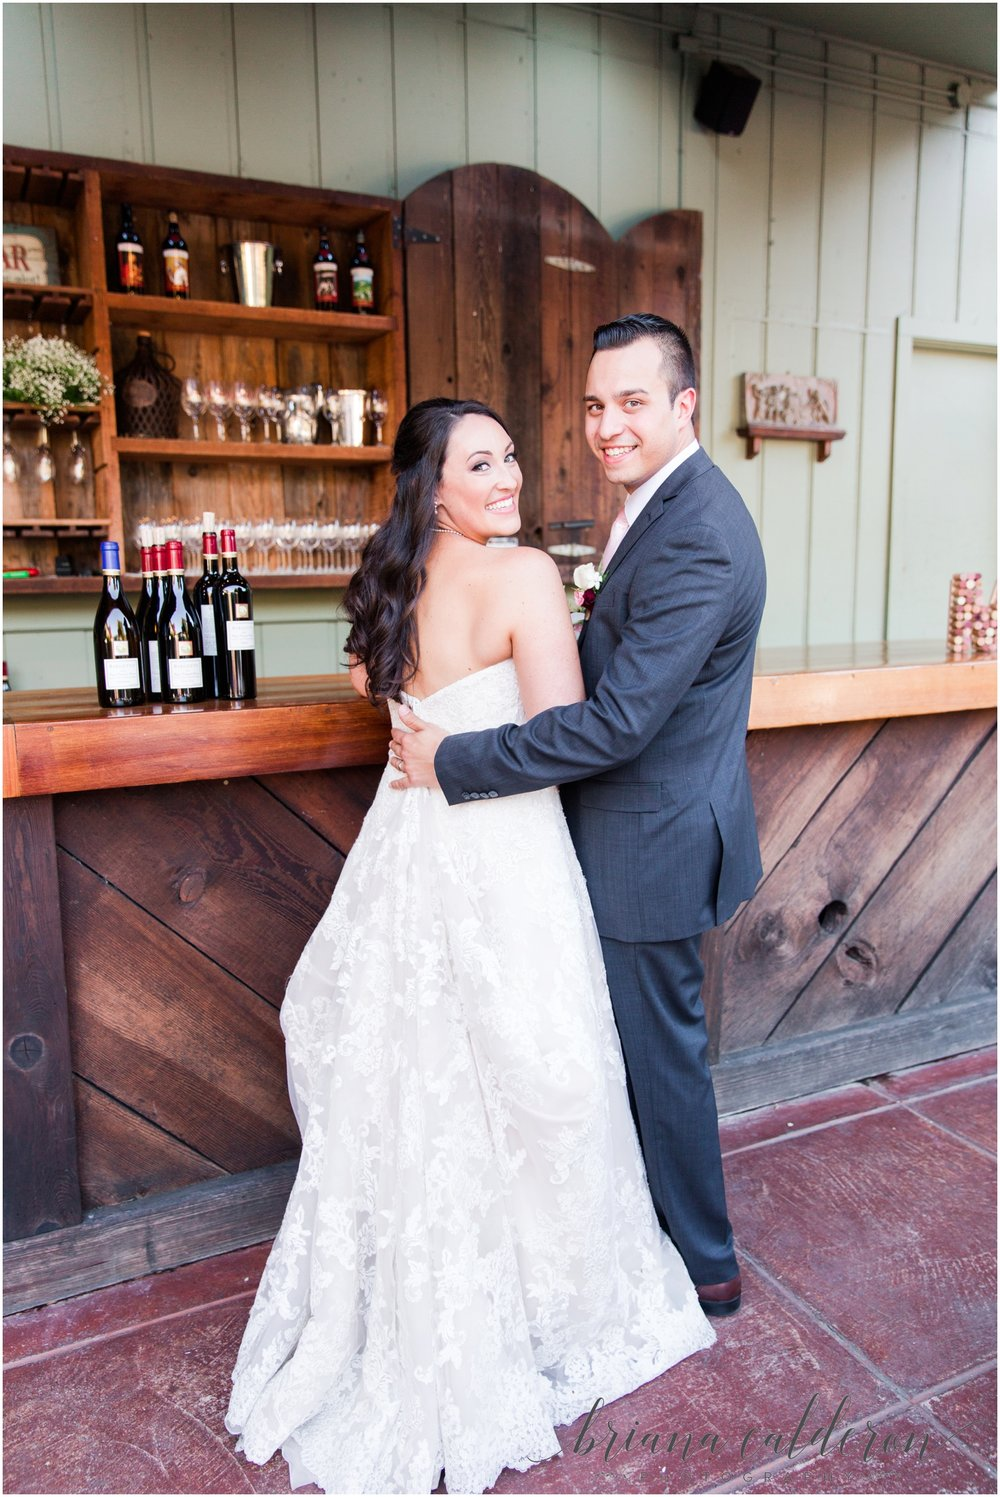 Bargetto Winery Wedding photos by Briana Calderon Photography_0946.jpg